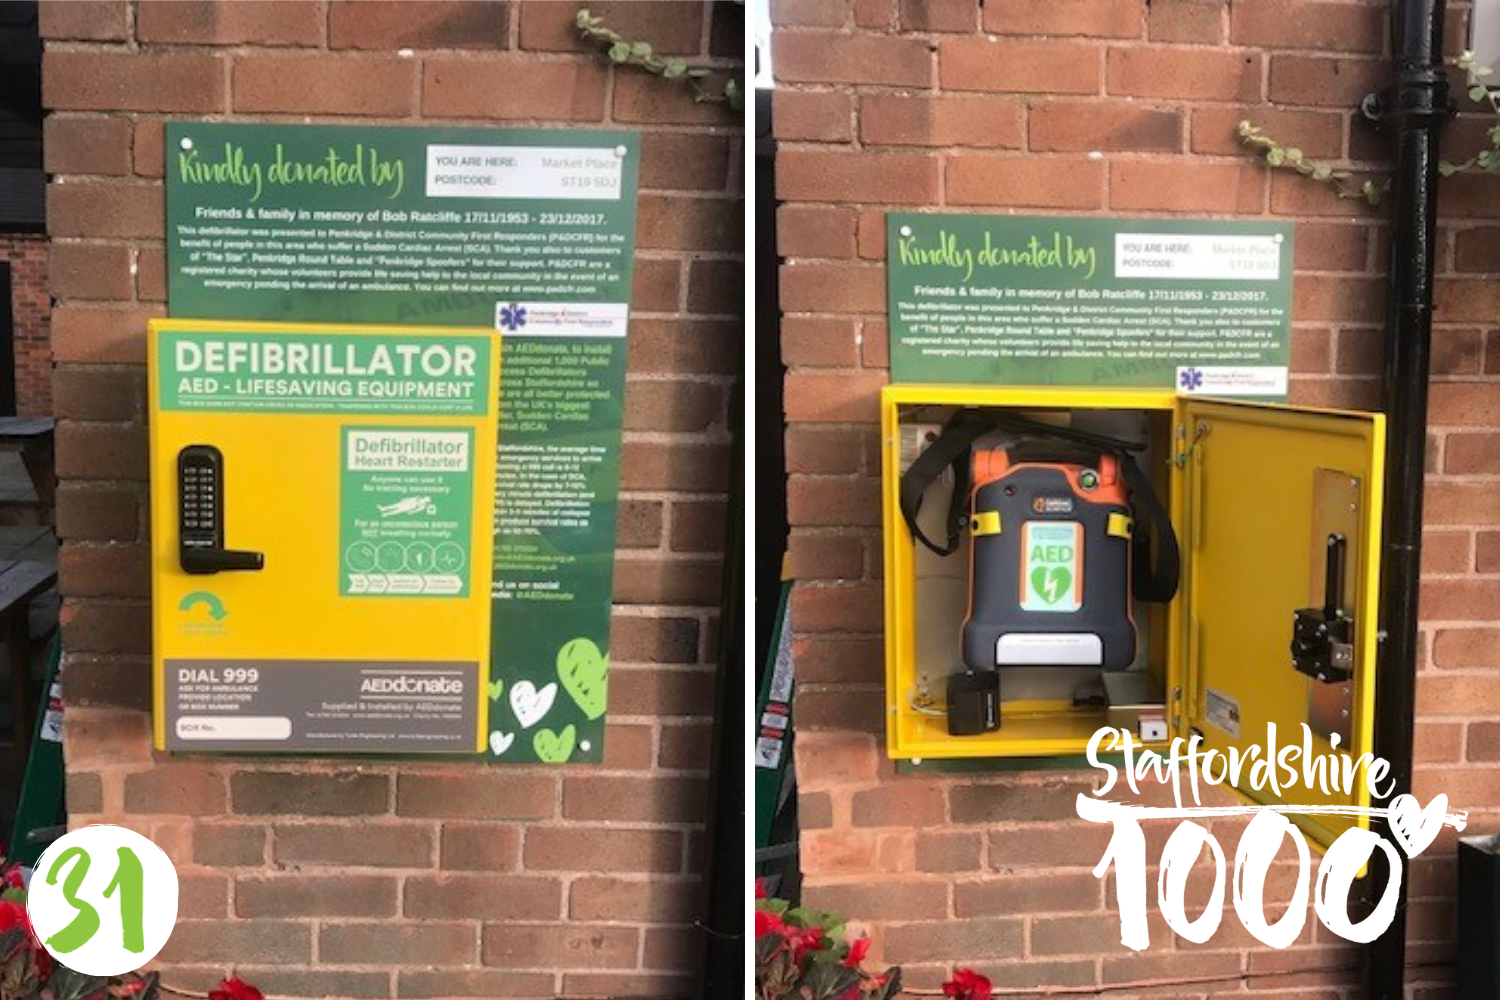 Defibrillator placed in memory of Bob Ratcliffe